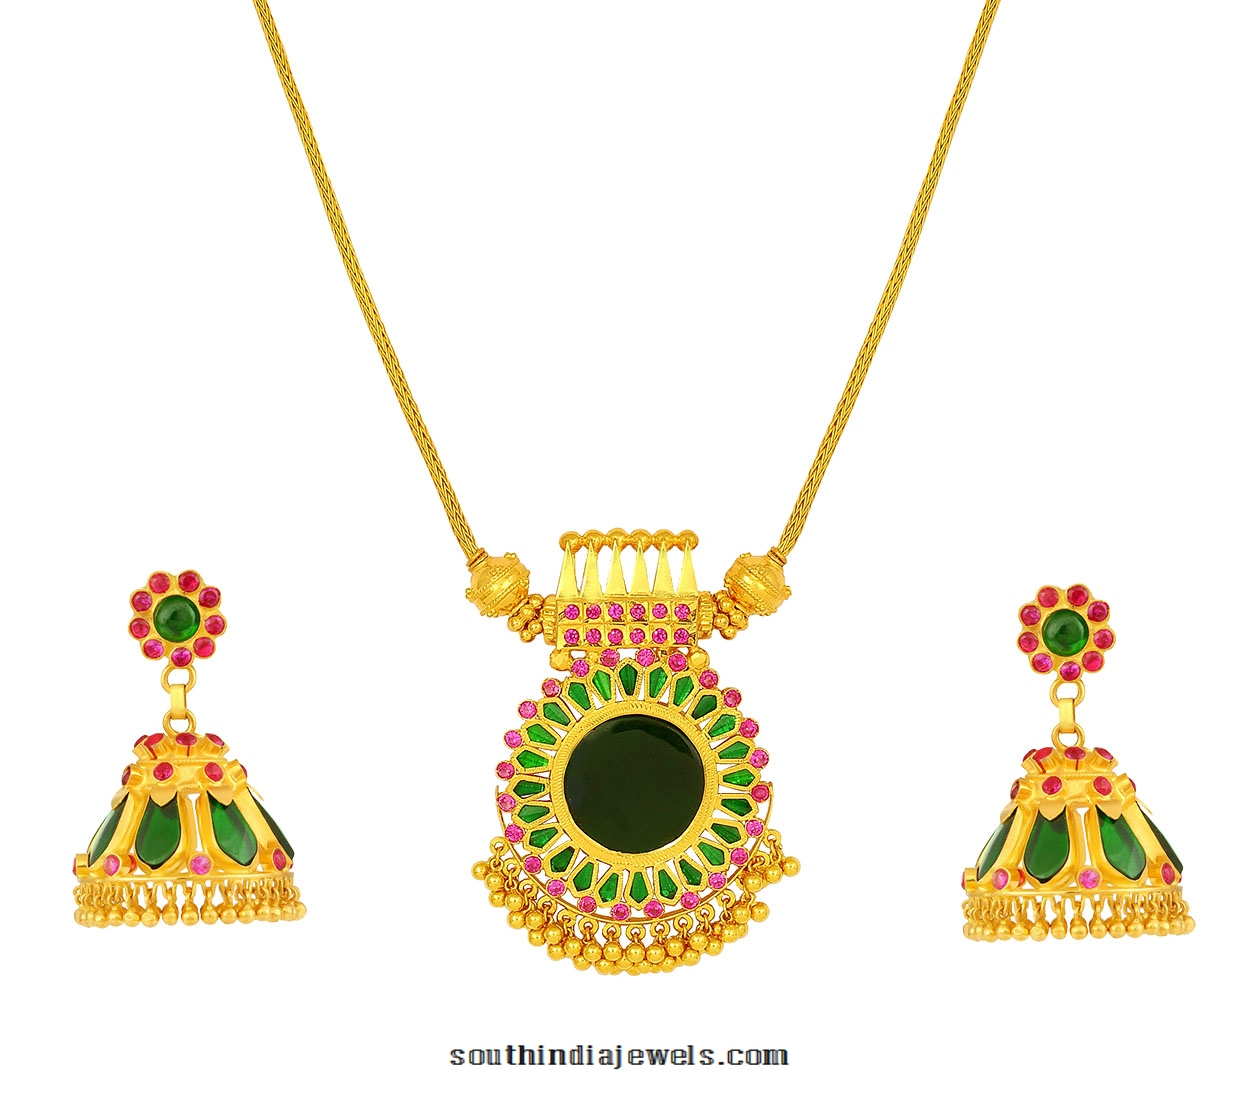 Kerala style gold necklace set from jos alukkas south india jewels kerala style gold necklace sets from jos alukkas aloadofball Image collections